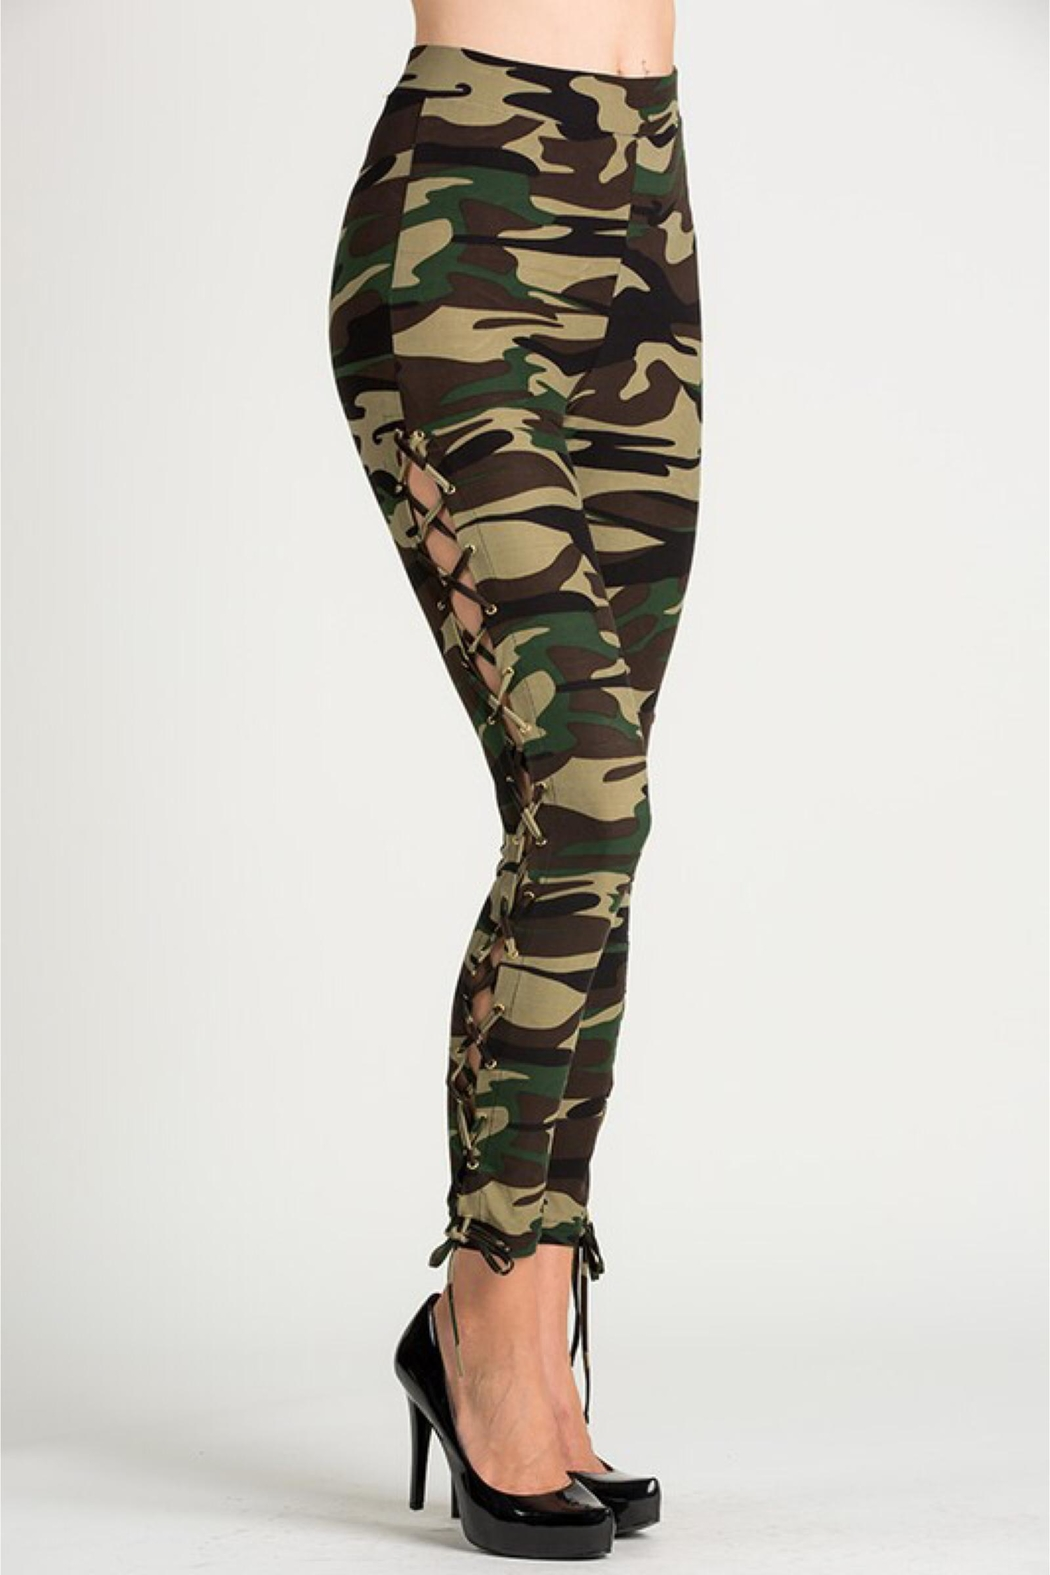 People Outfitter Camouflage Lace-Up Leggings - Side Cropped Image